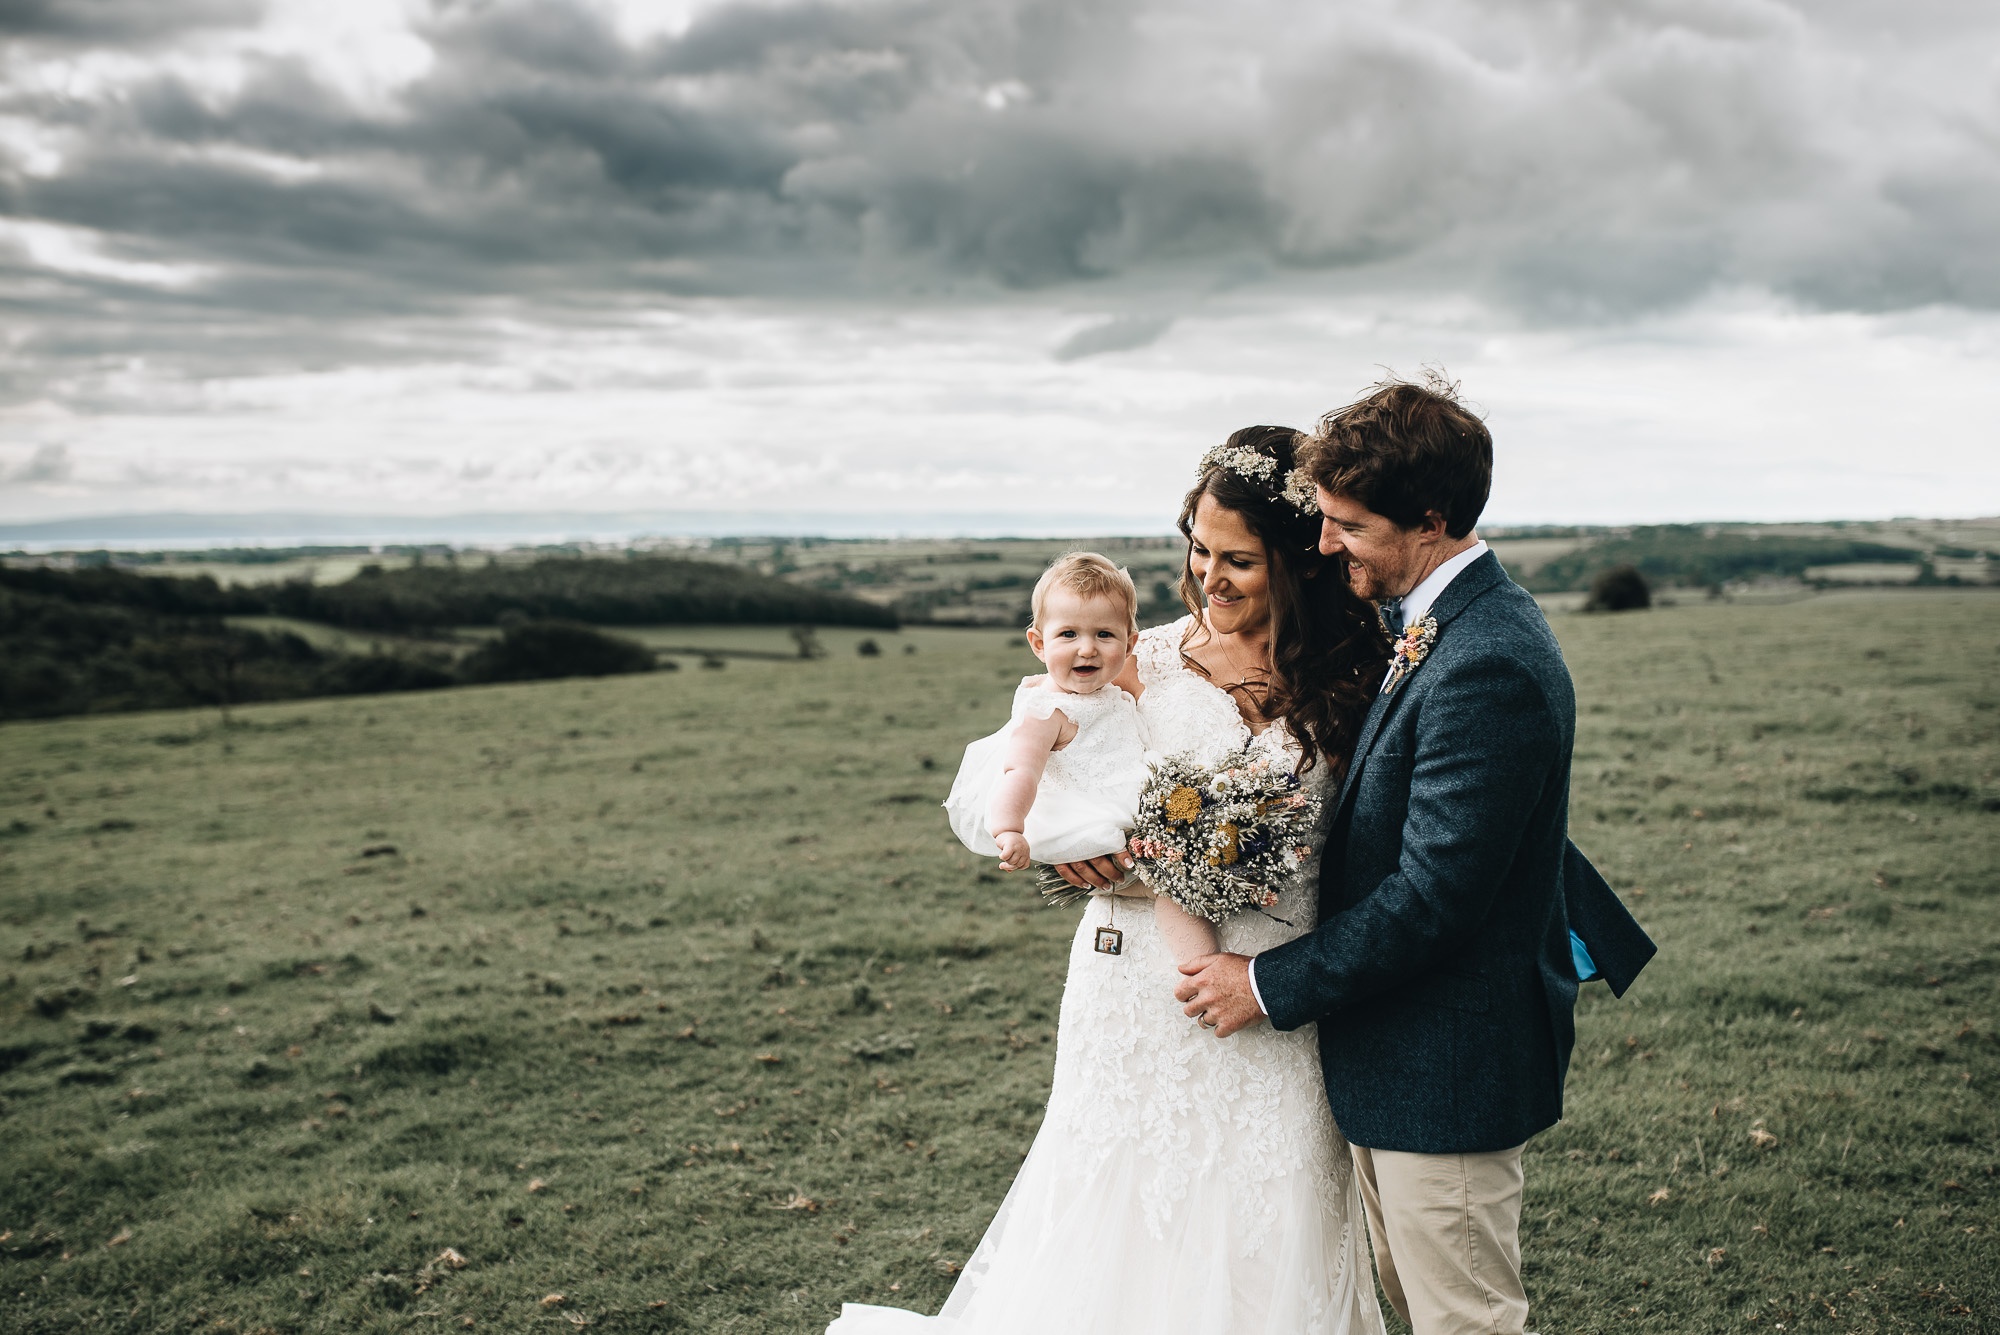 Coed Wedding and Events | Cardiff | Swansea and South Wales wedding Photographer | Family Photographer